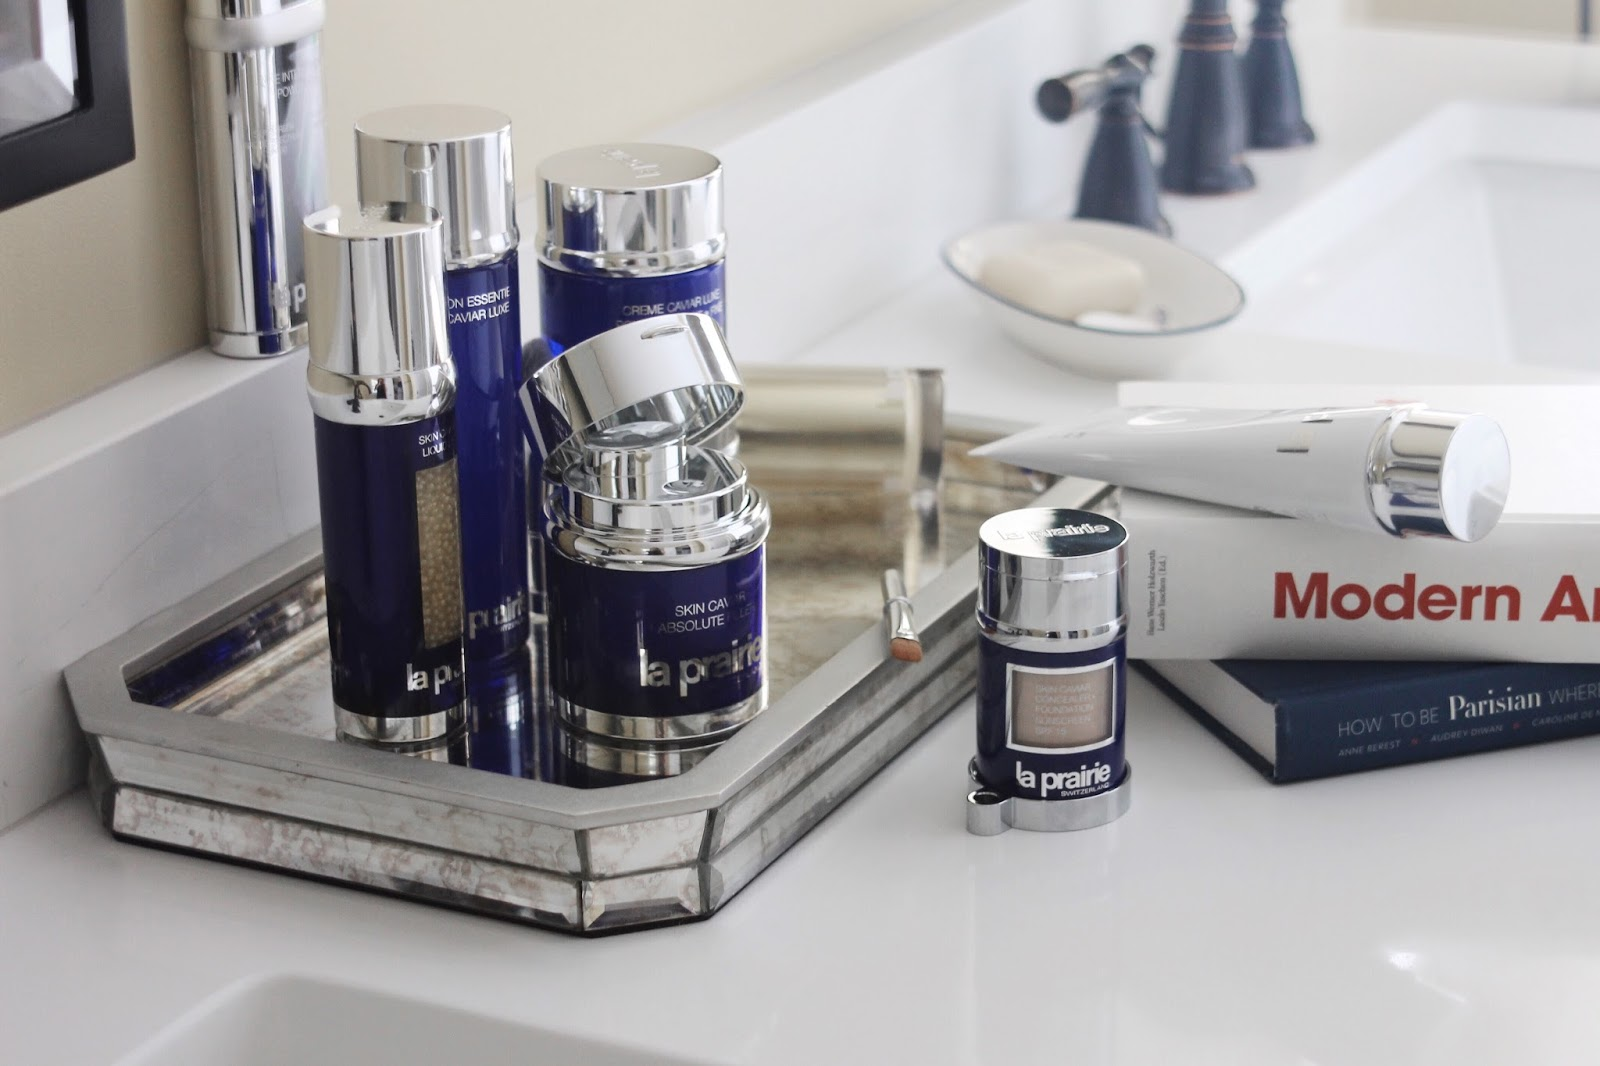 A New Launch From La Prairie & My Experience With the Caviar Range